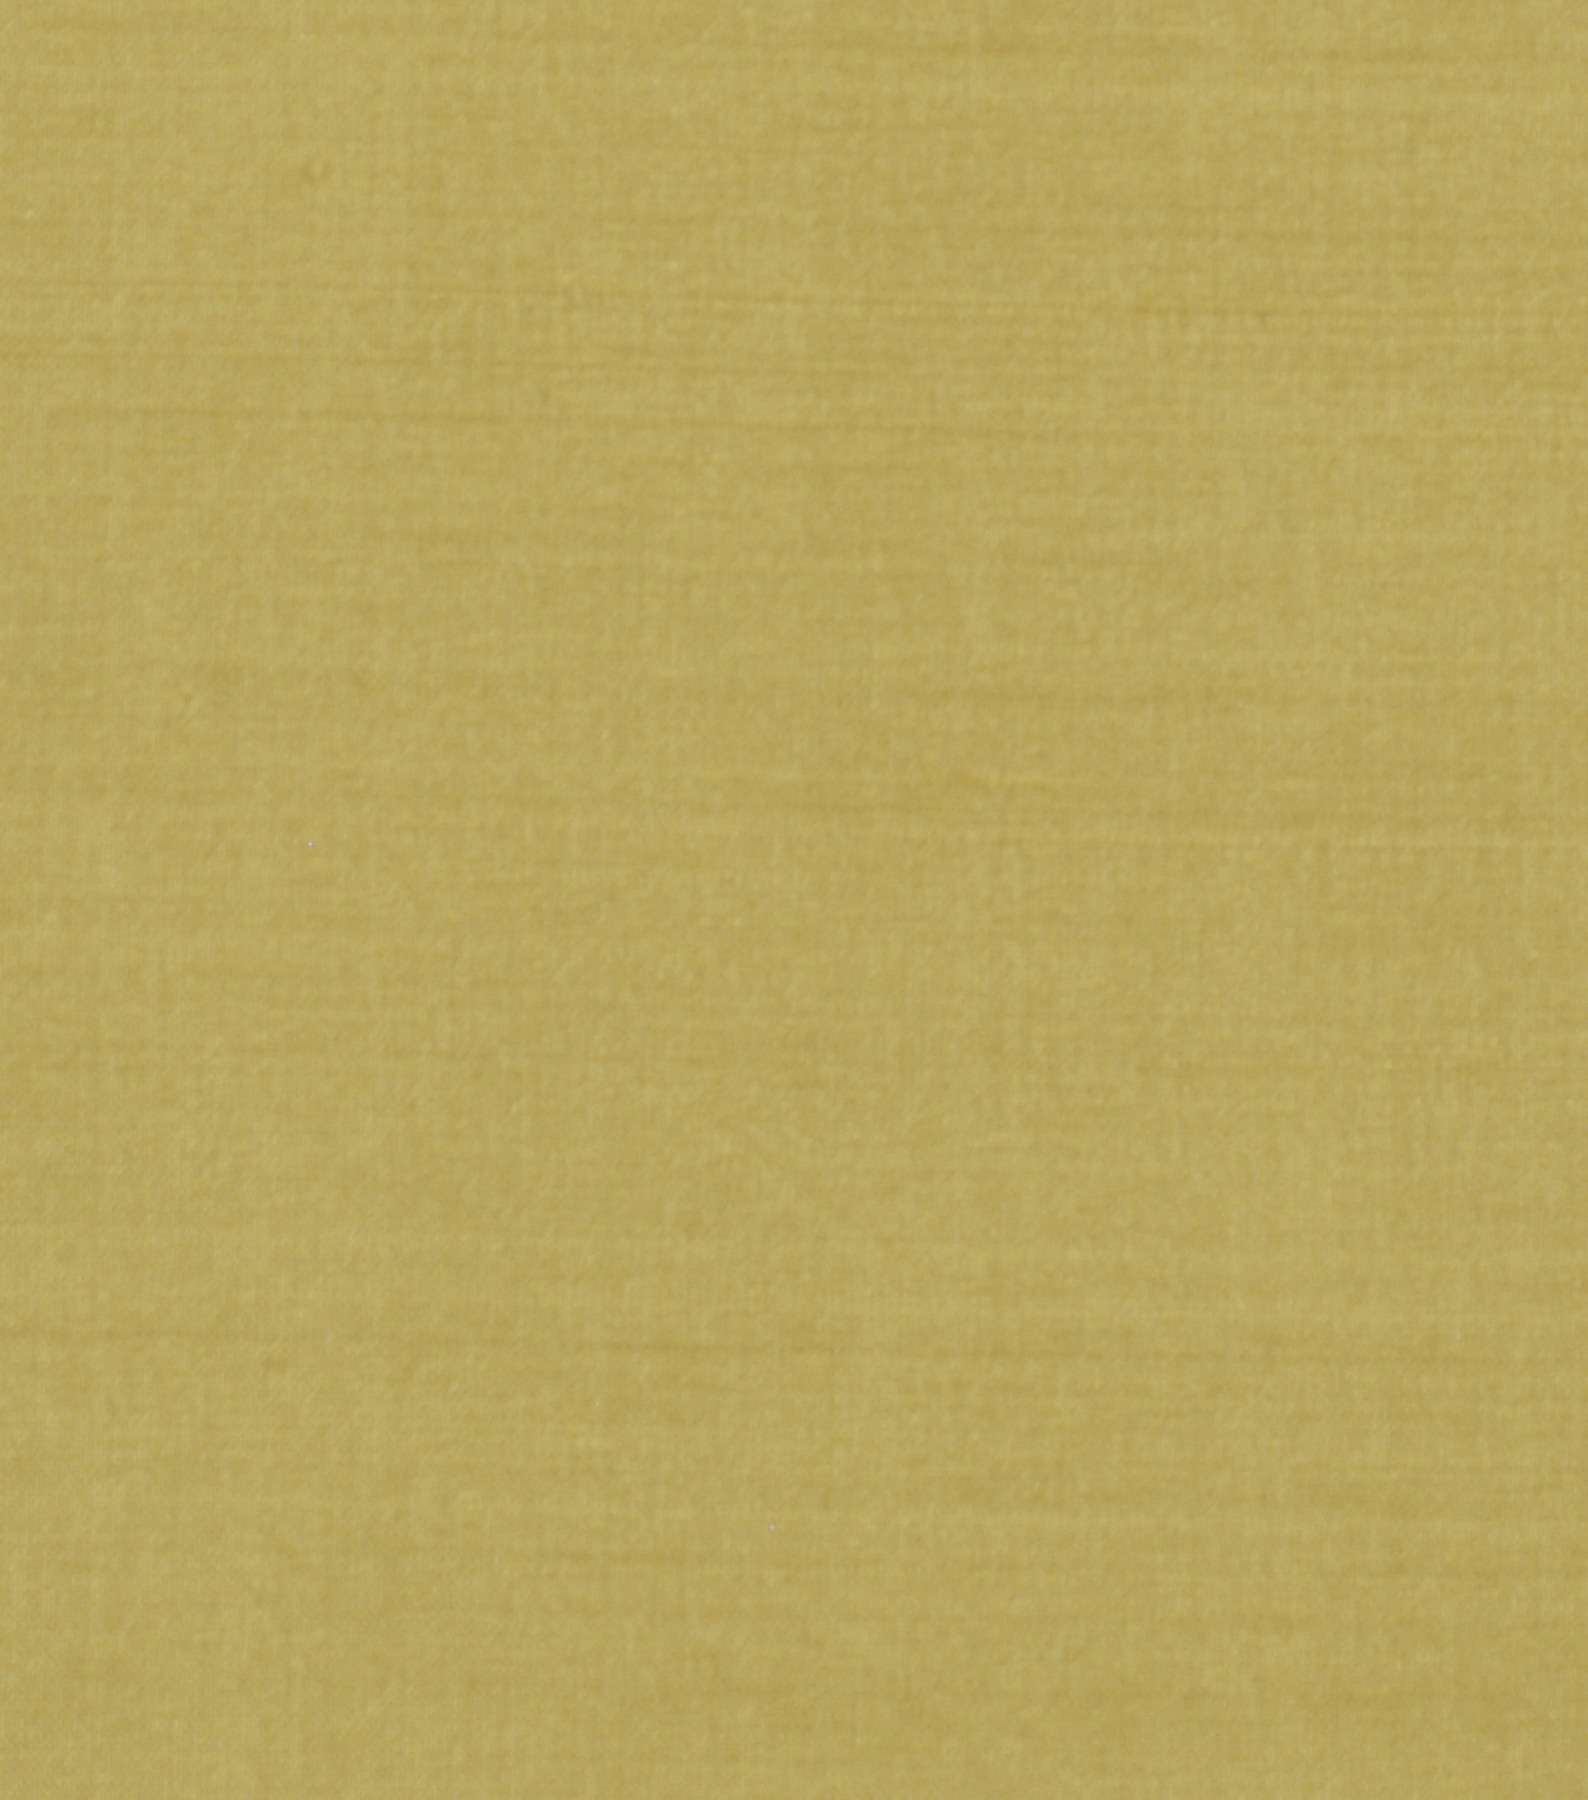 Home Decor 8\u0022x8\u0022 Fabric Swatch-Solid Fabric Signature Series Kalin Sunrise